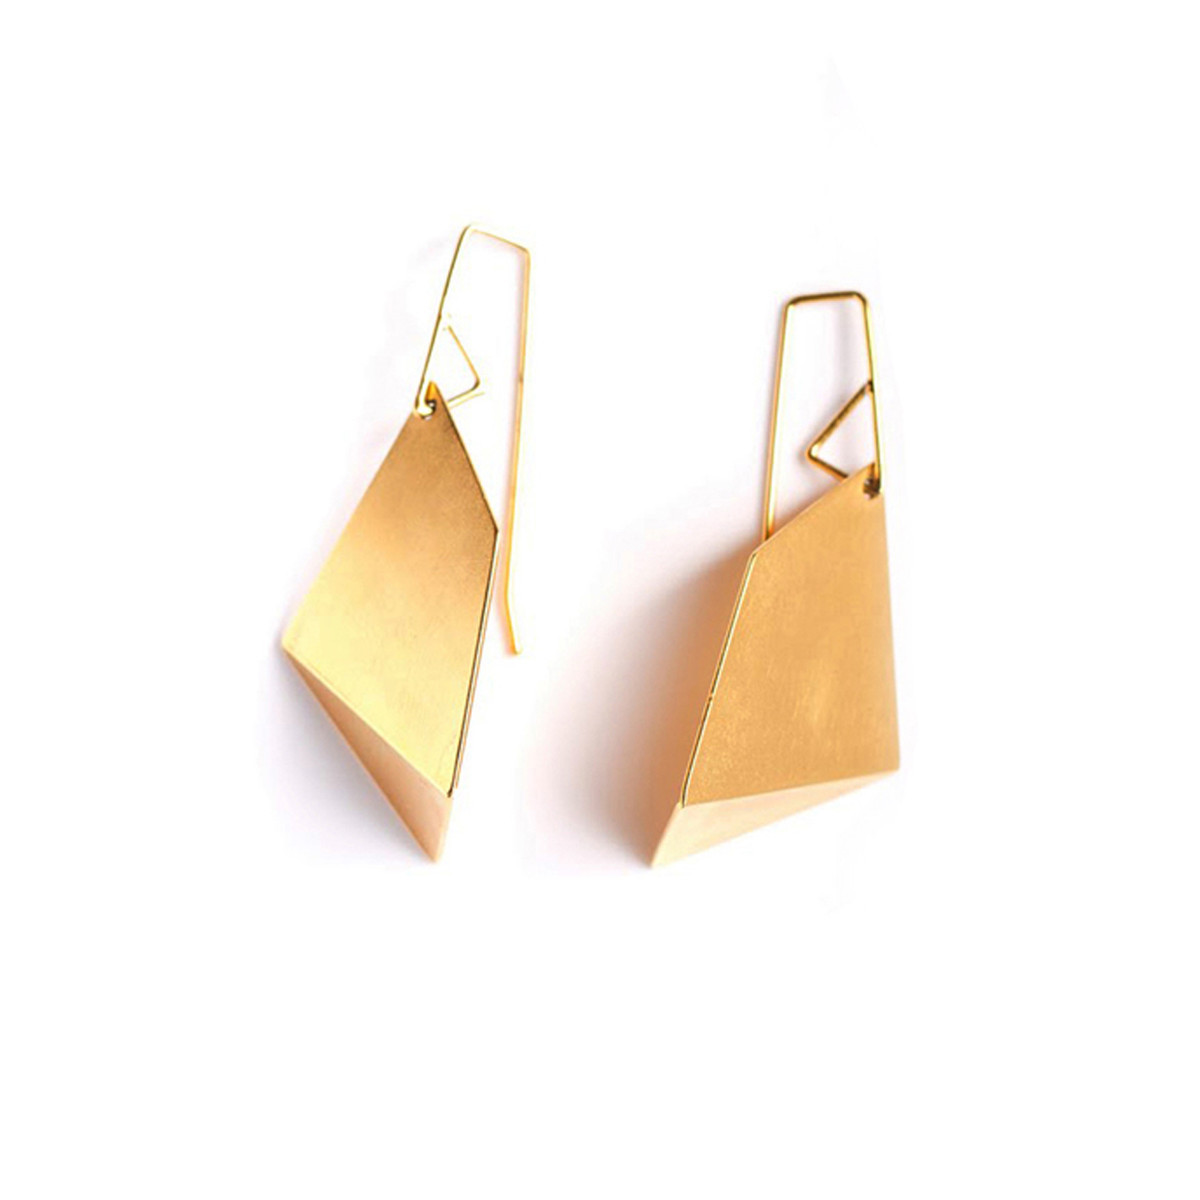 Fab.com Small Single Fold Earrings Gold, 25% offFab.com